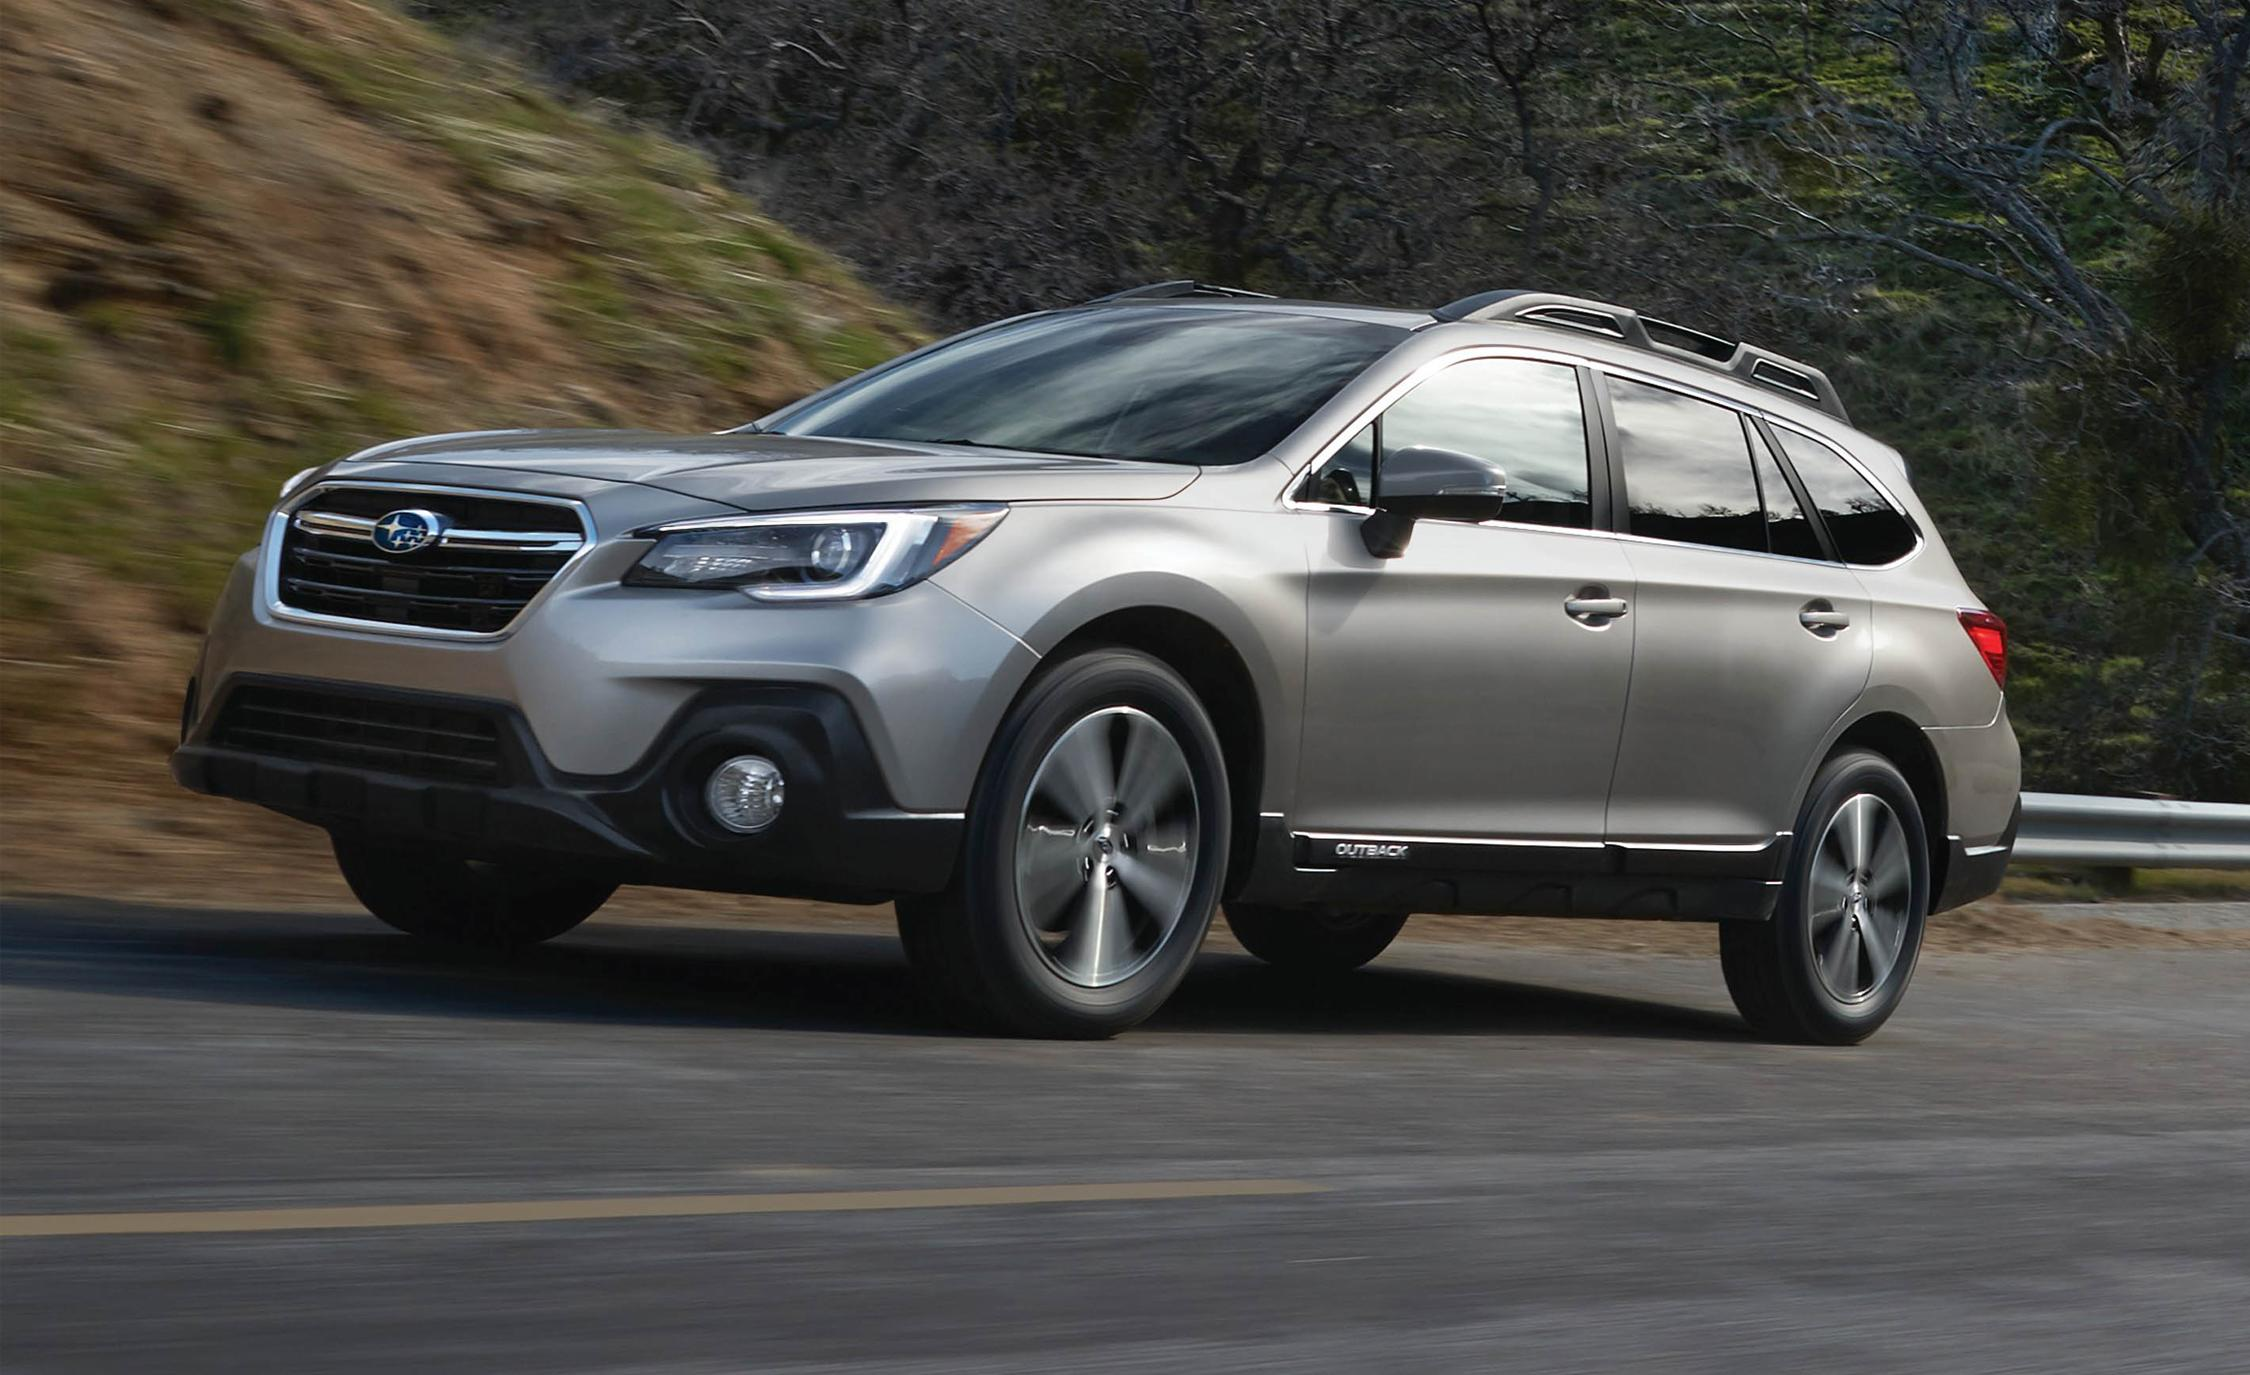 2018 Subaru Outback Little Things Mean a Lot